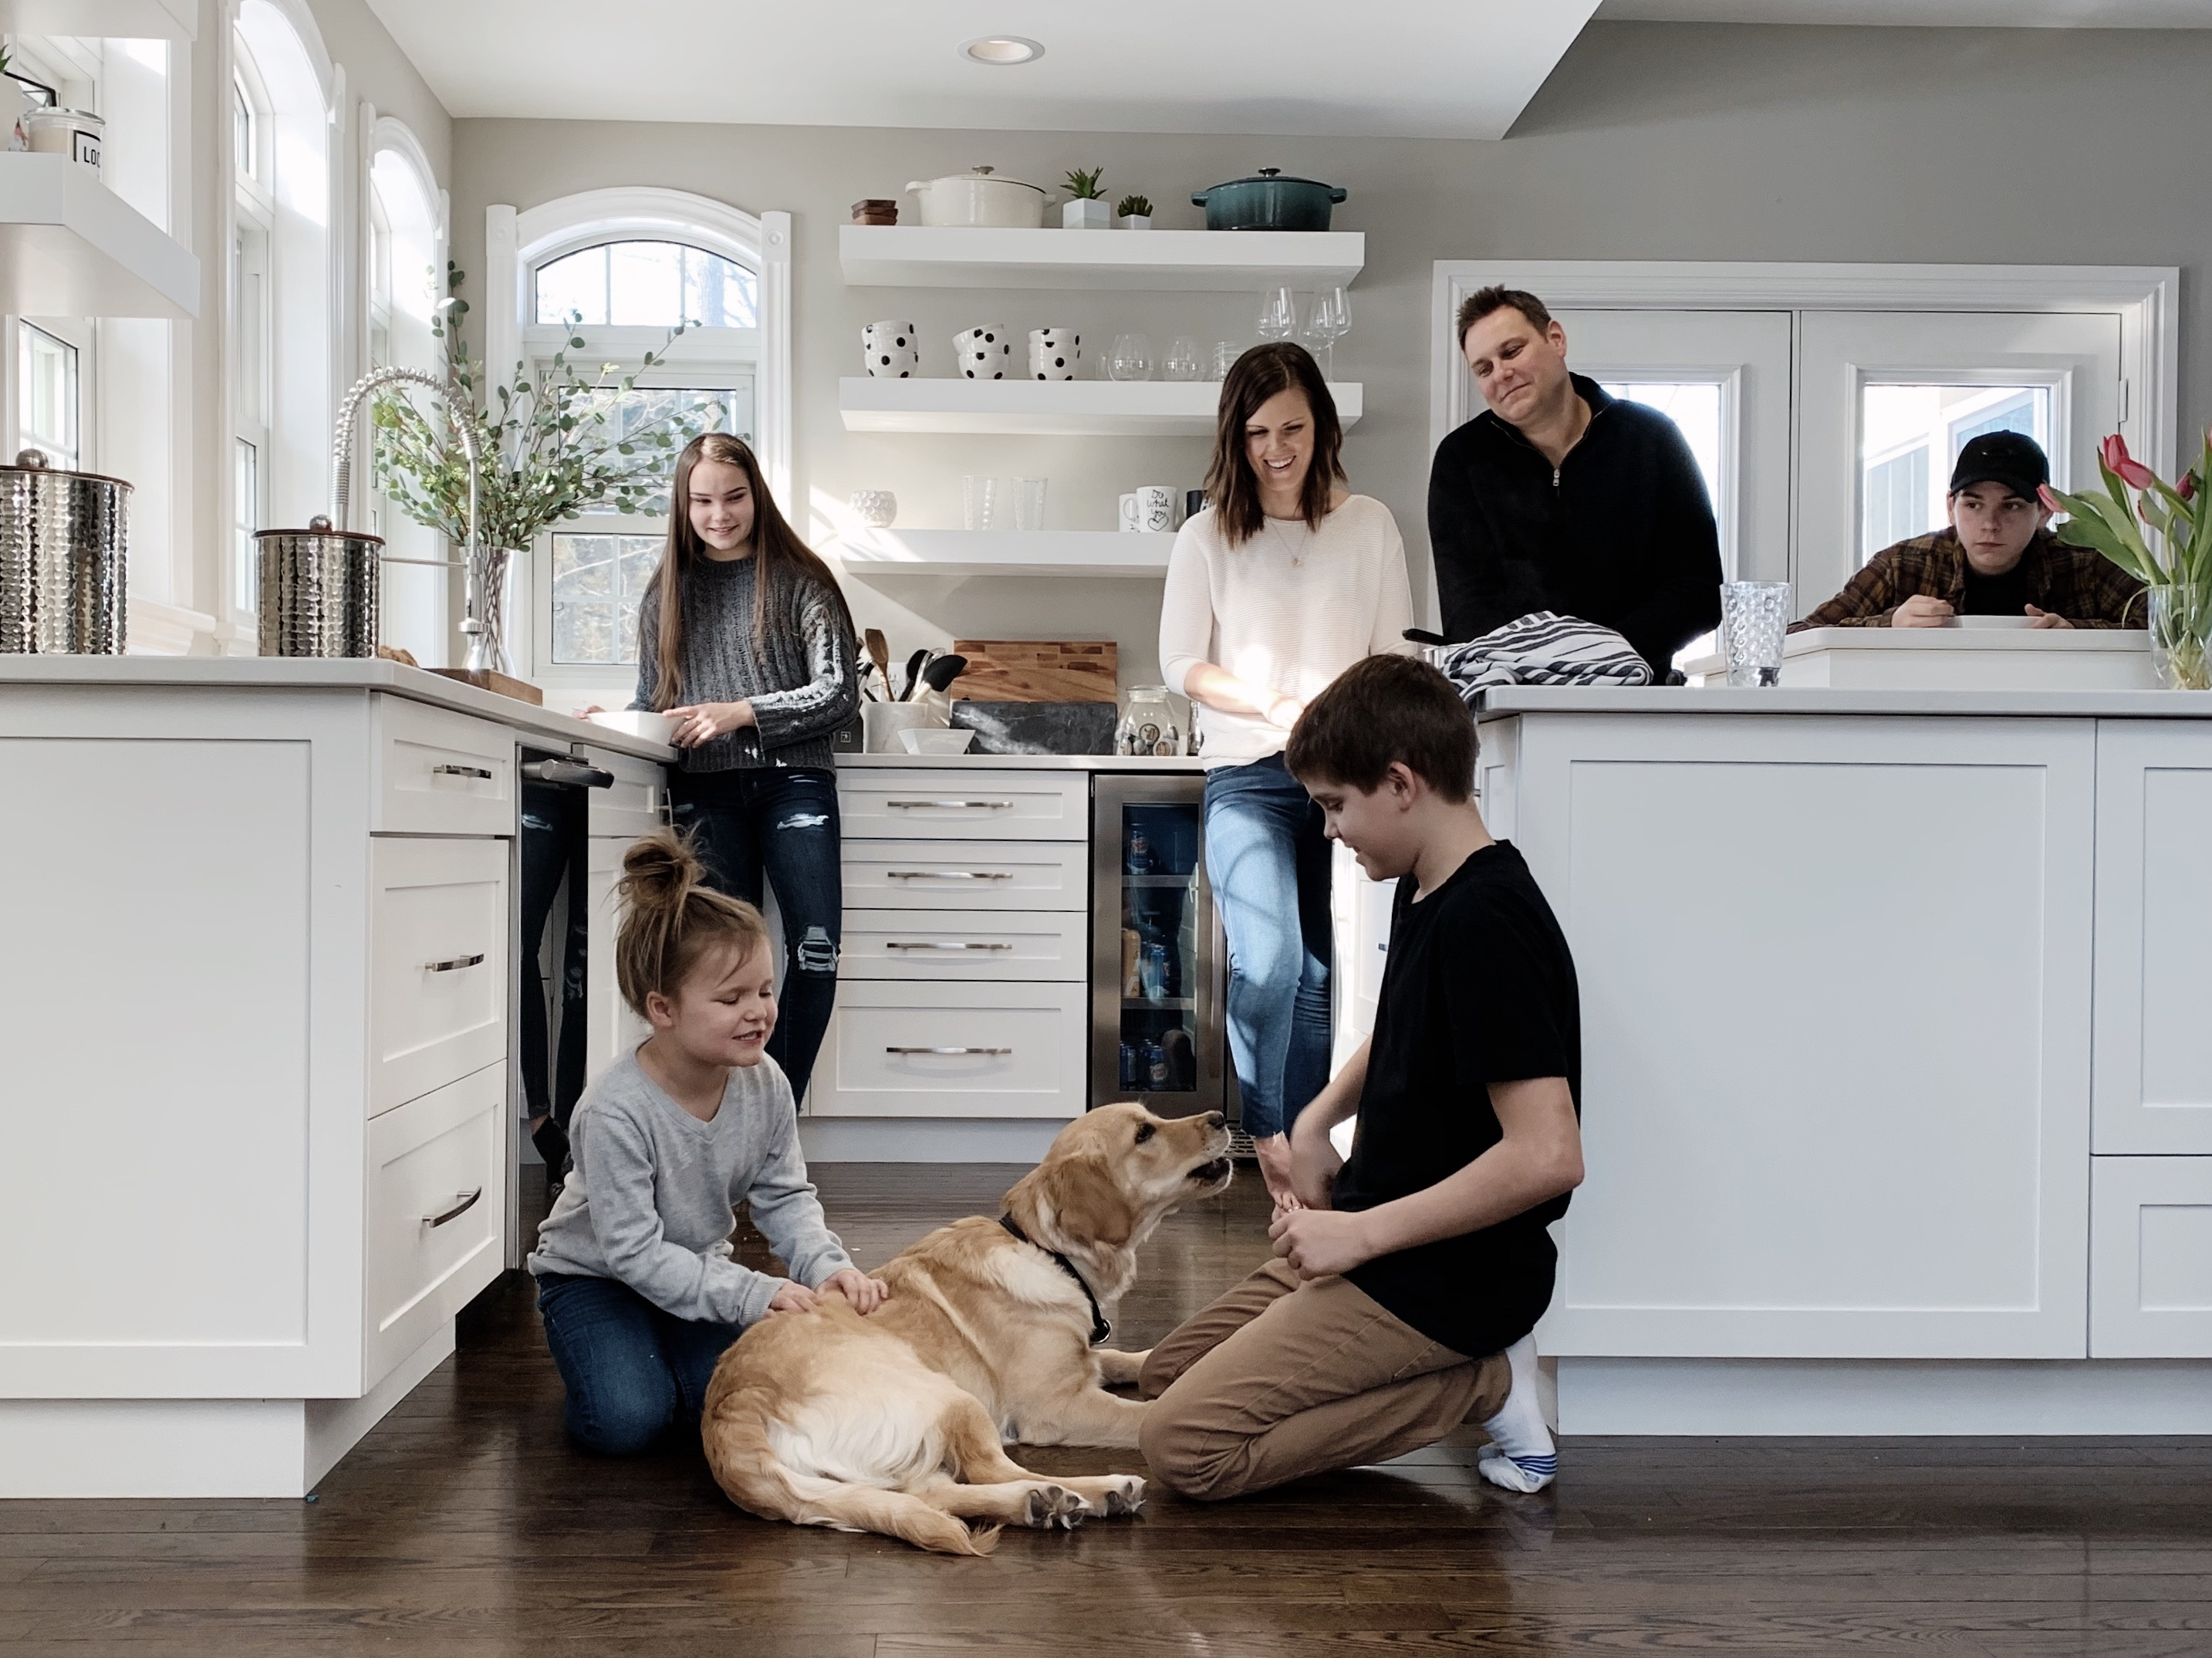 Mom and dad with kids and family dog in kitchen